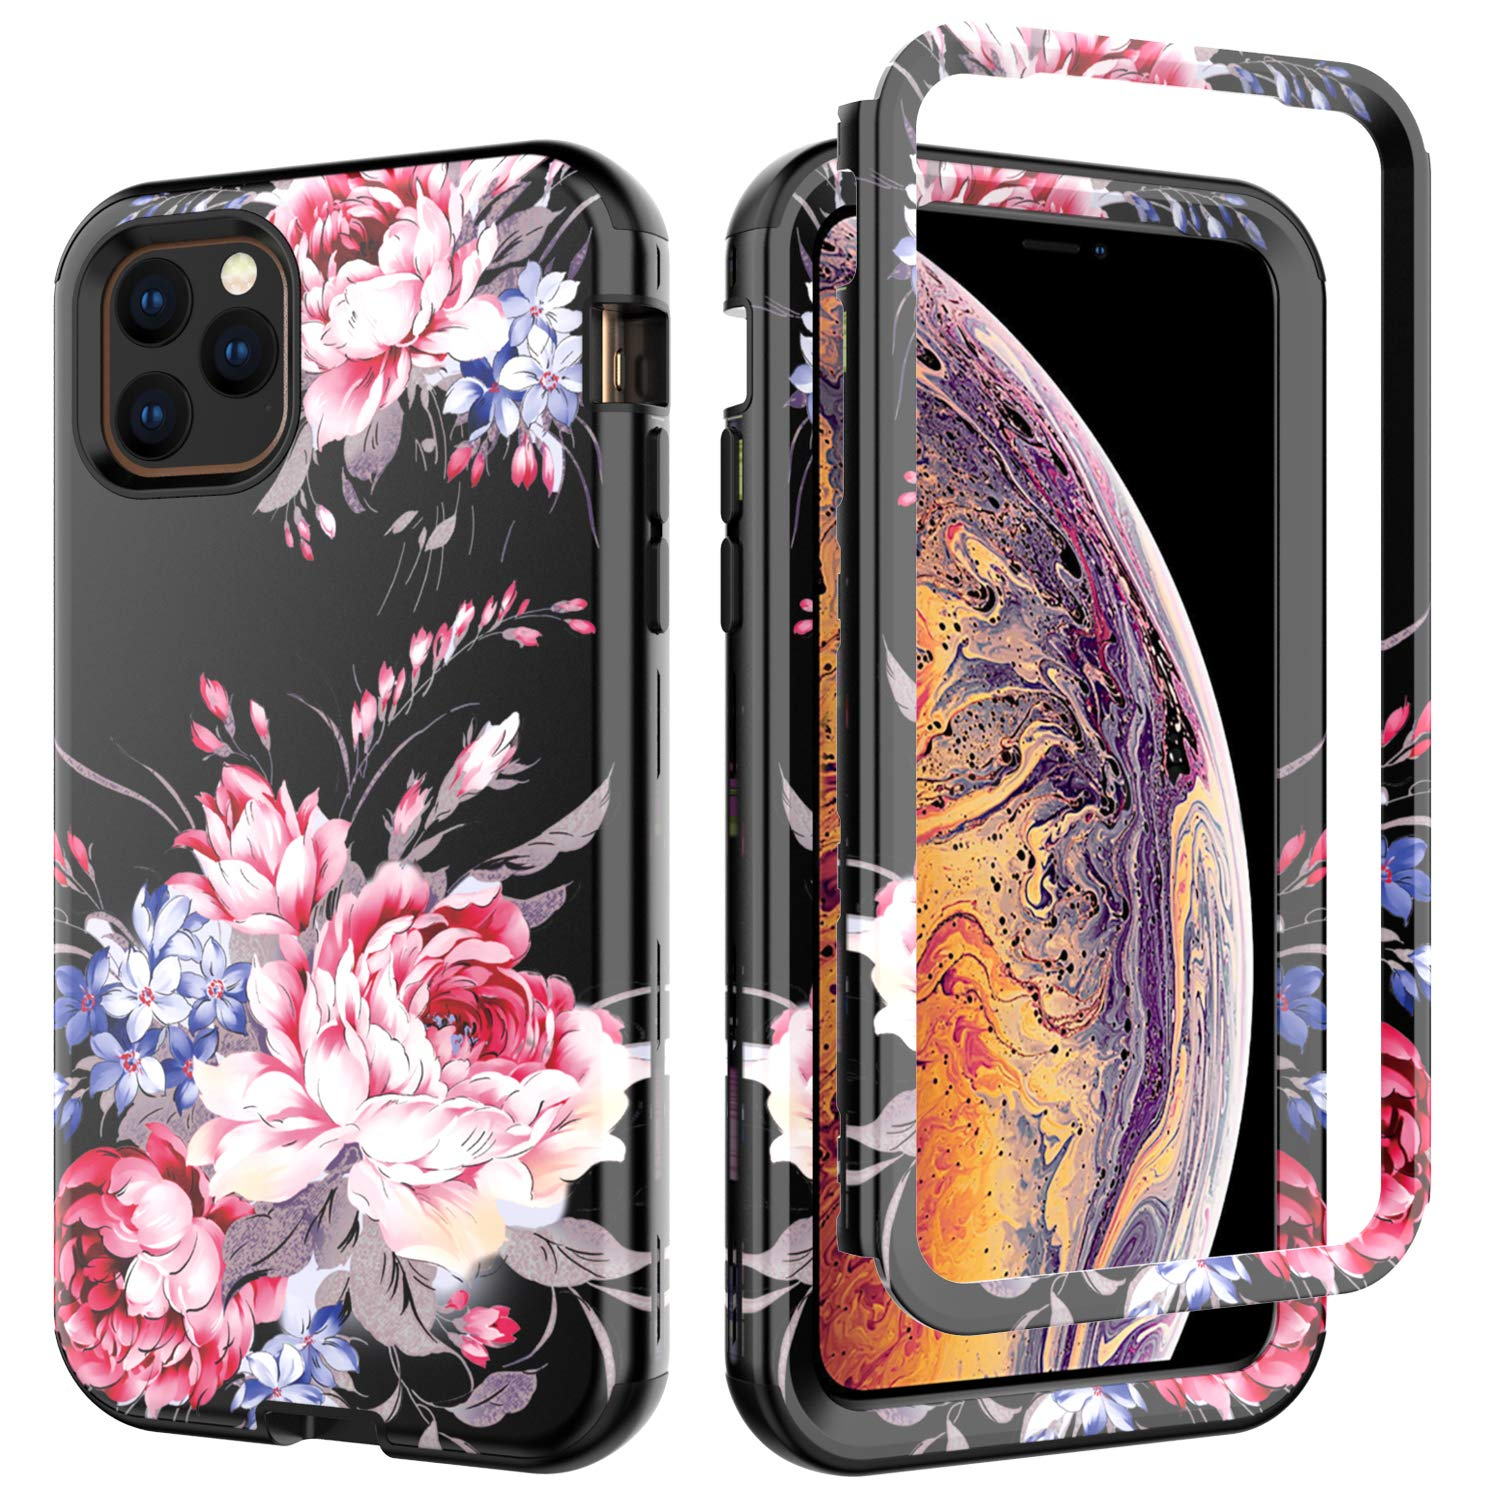 iPhone 11 Pro Max Case, Ranyi Luxury Floral Flower Pattern Full Body Protection 3 in 1 Hybrid Bumper Shock Absorbing High Impact Heavy Duty Defender Case for 2019 6.5 Inch iPhone 11 Pro Max (pink/red) by Ranyi